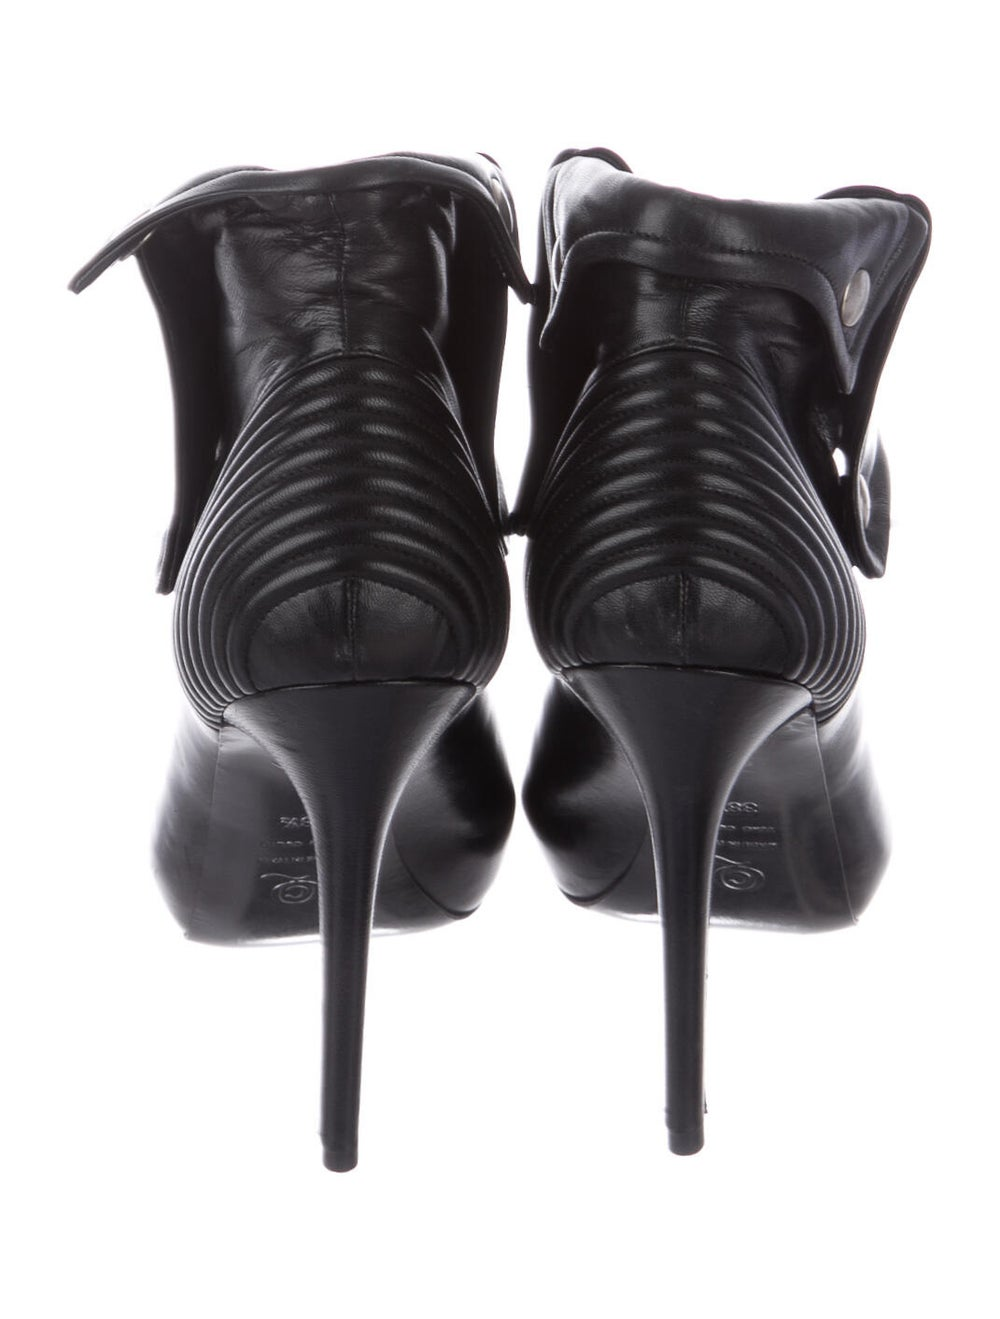 Alexander McQueen Leather Boots Black - image 4